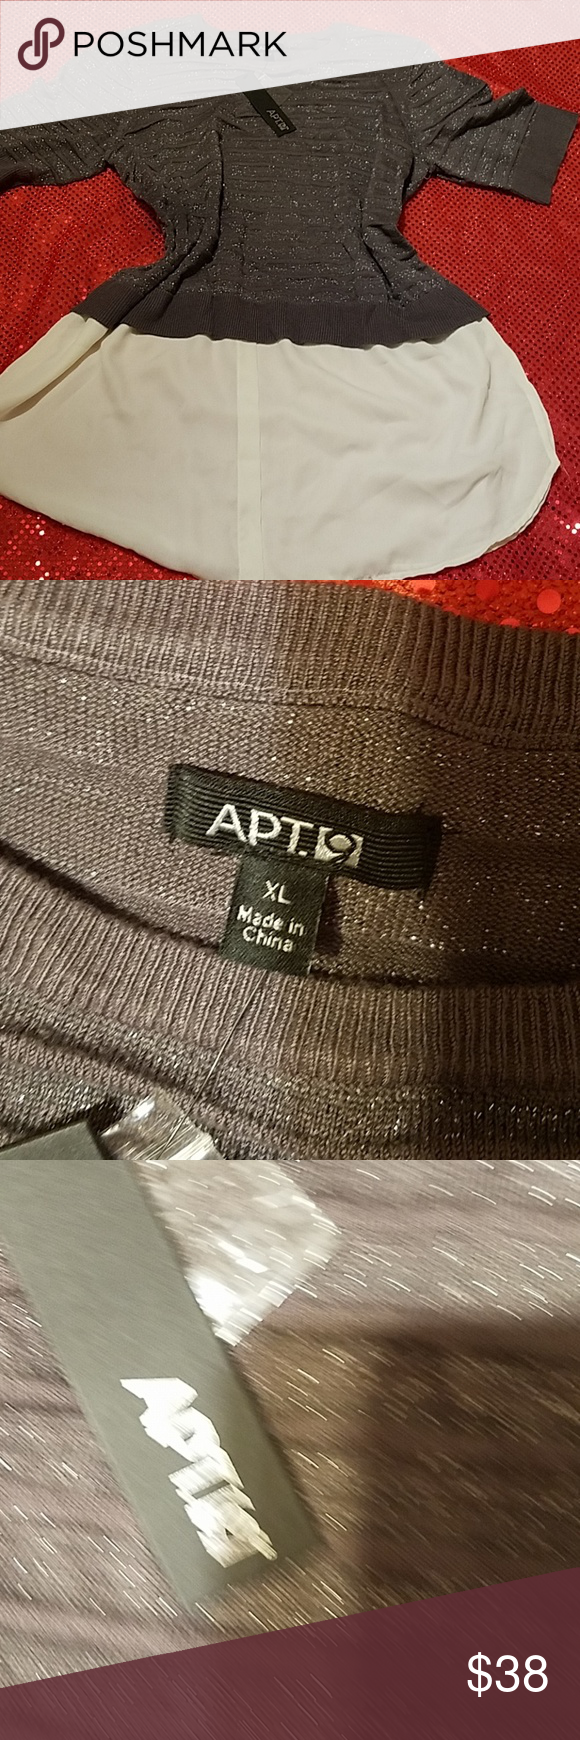 Apt9 Top With Built In Undershirt Extra Large Nwt In 2018 My Posh